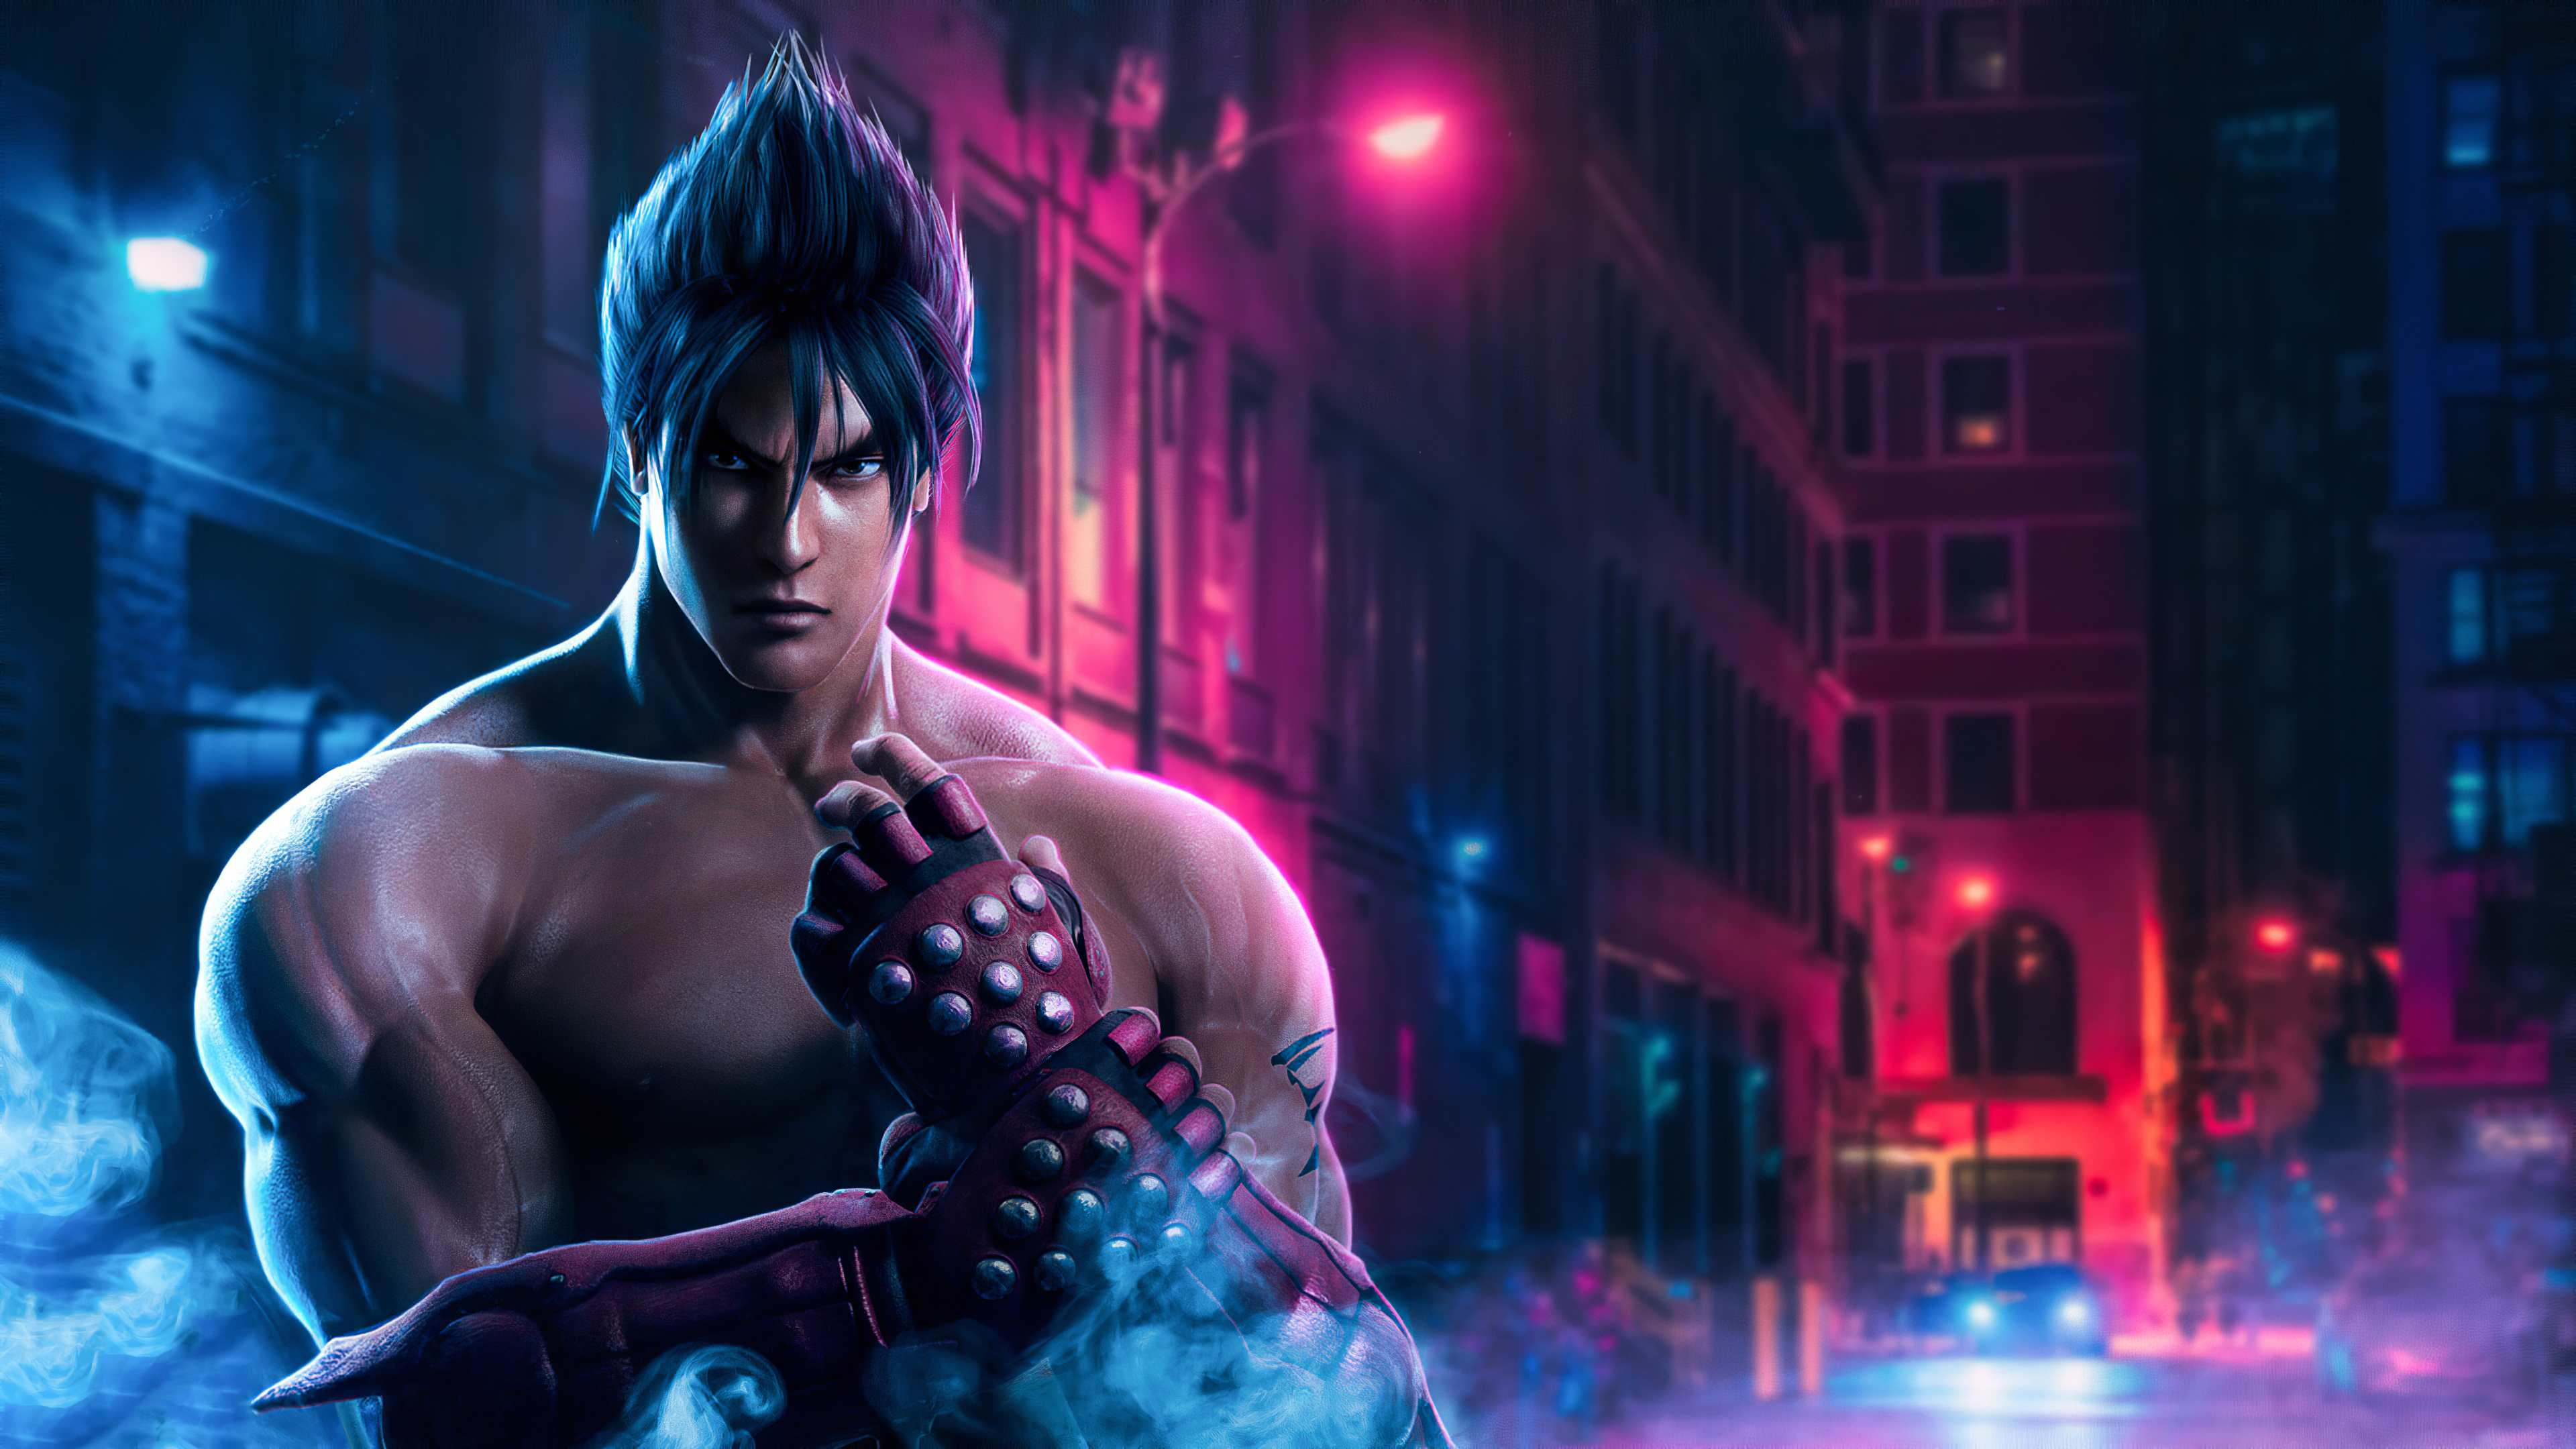 Jin Kazama Tekken 7 Wallpaper HD Games 4K Wallpapers Images 3840x2160